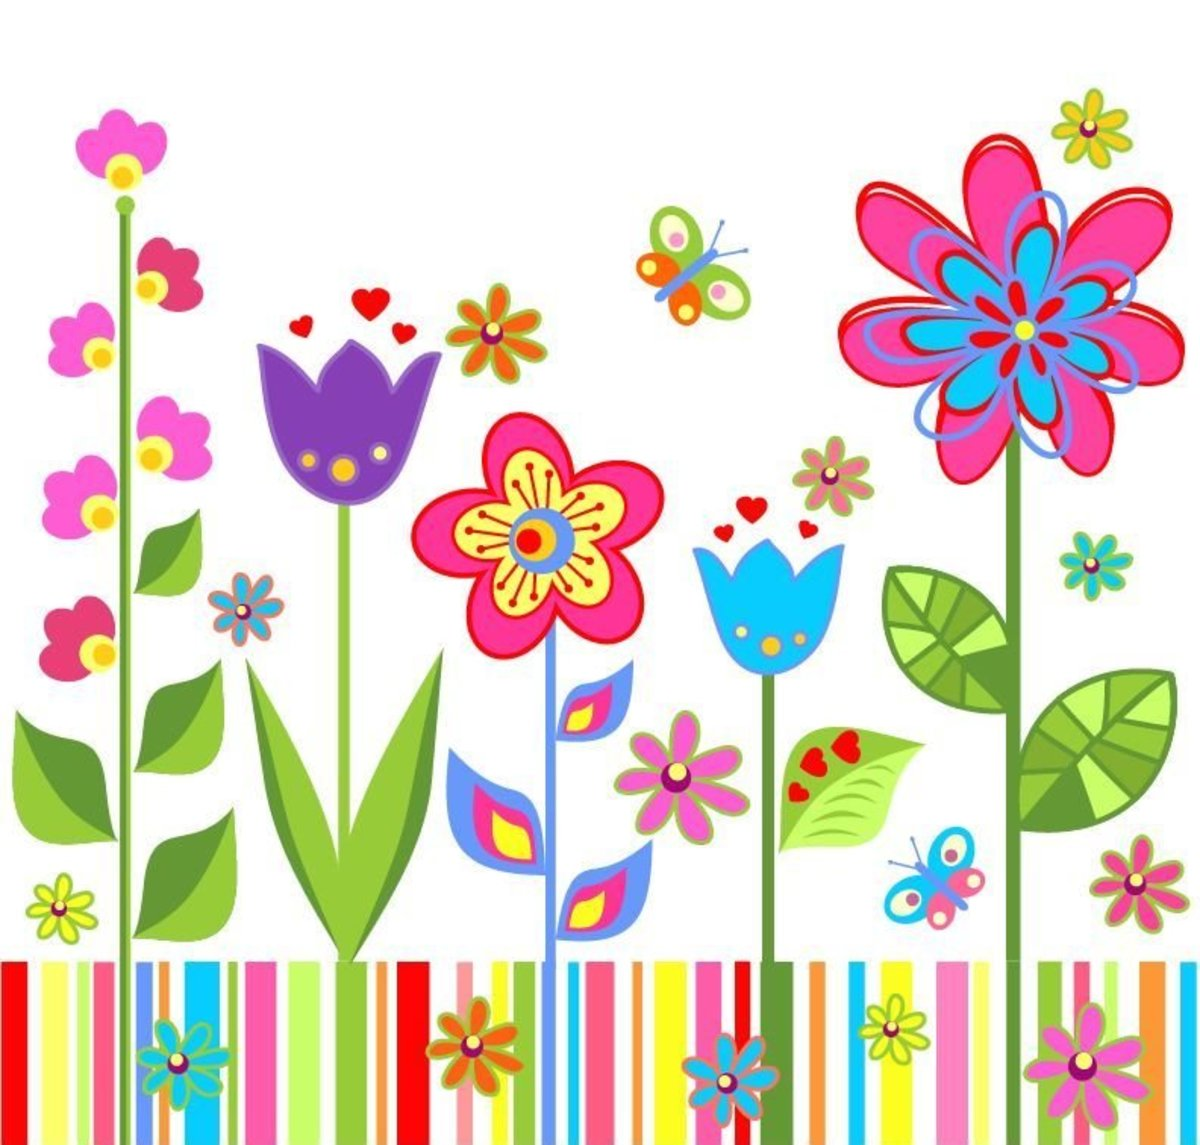 Flower clip art collection of 150 hubpages for Garden design graphics